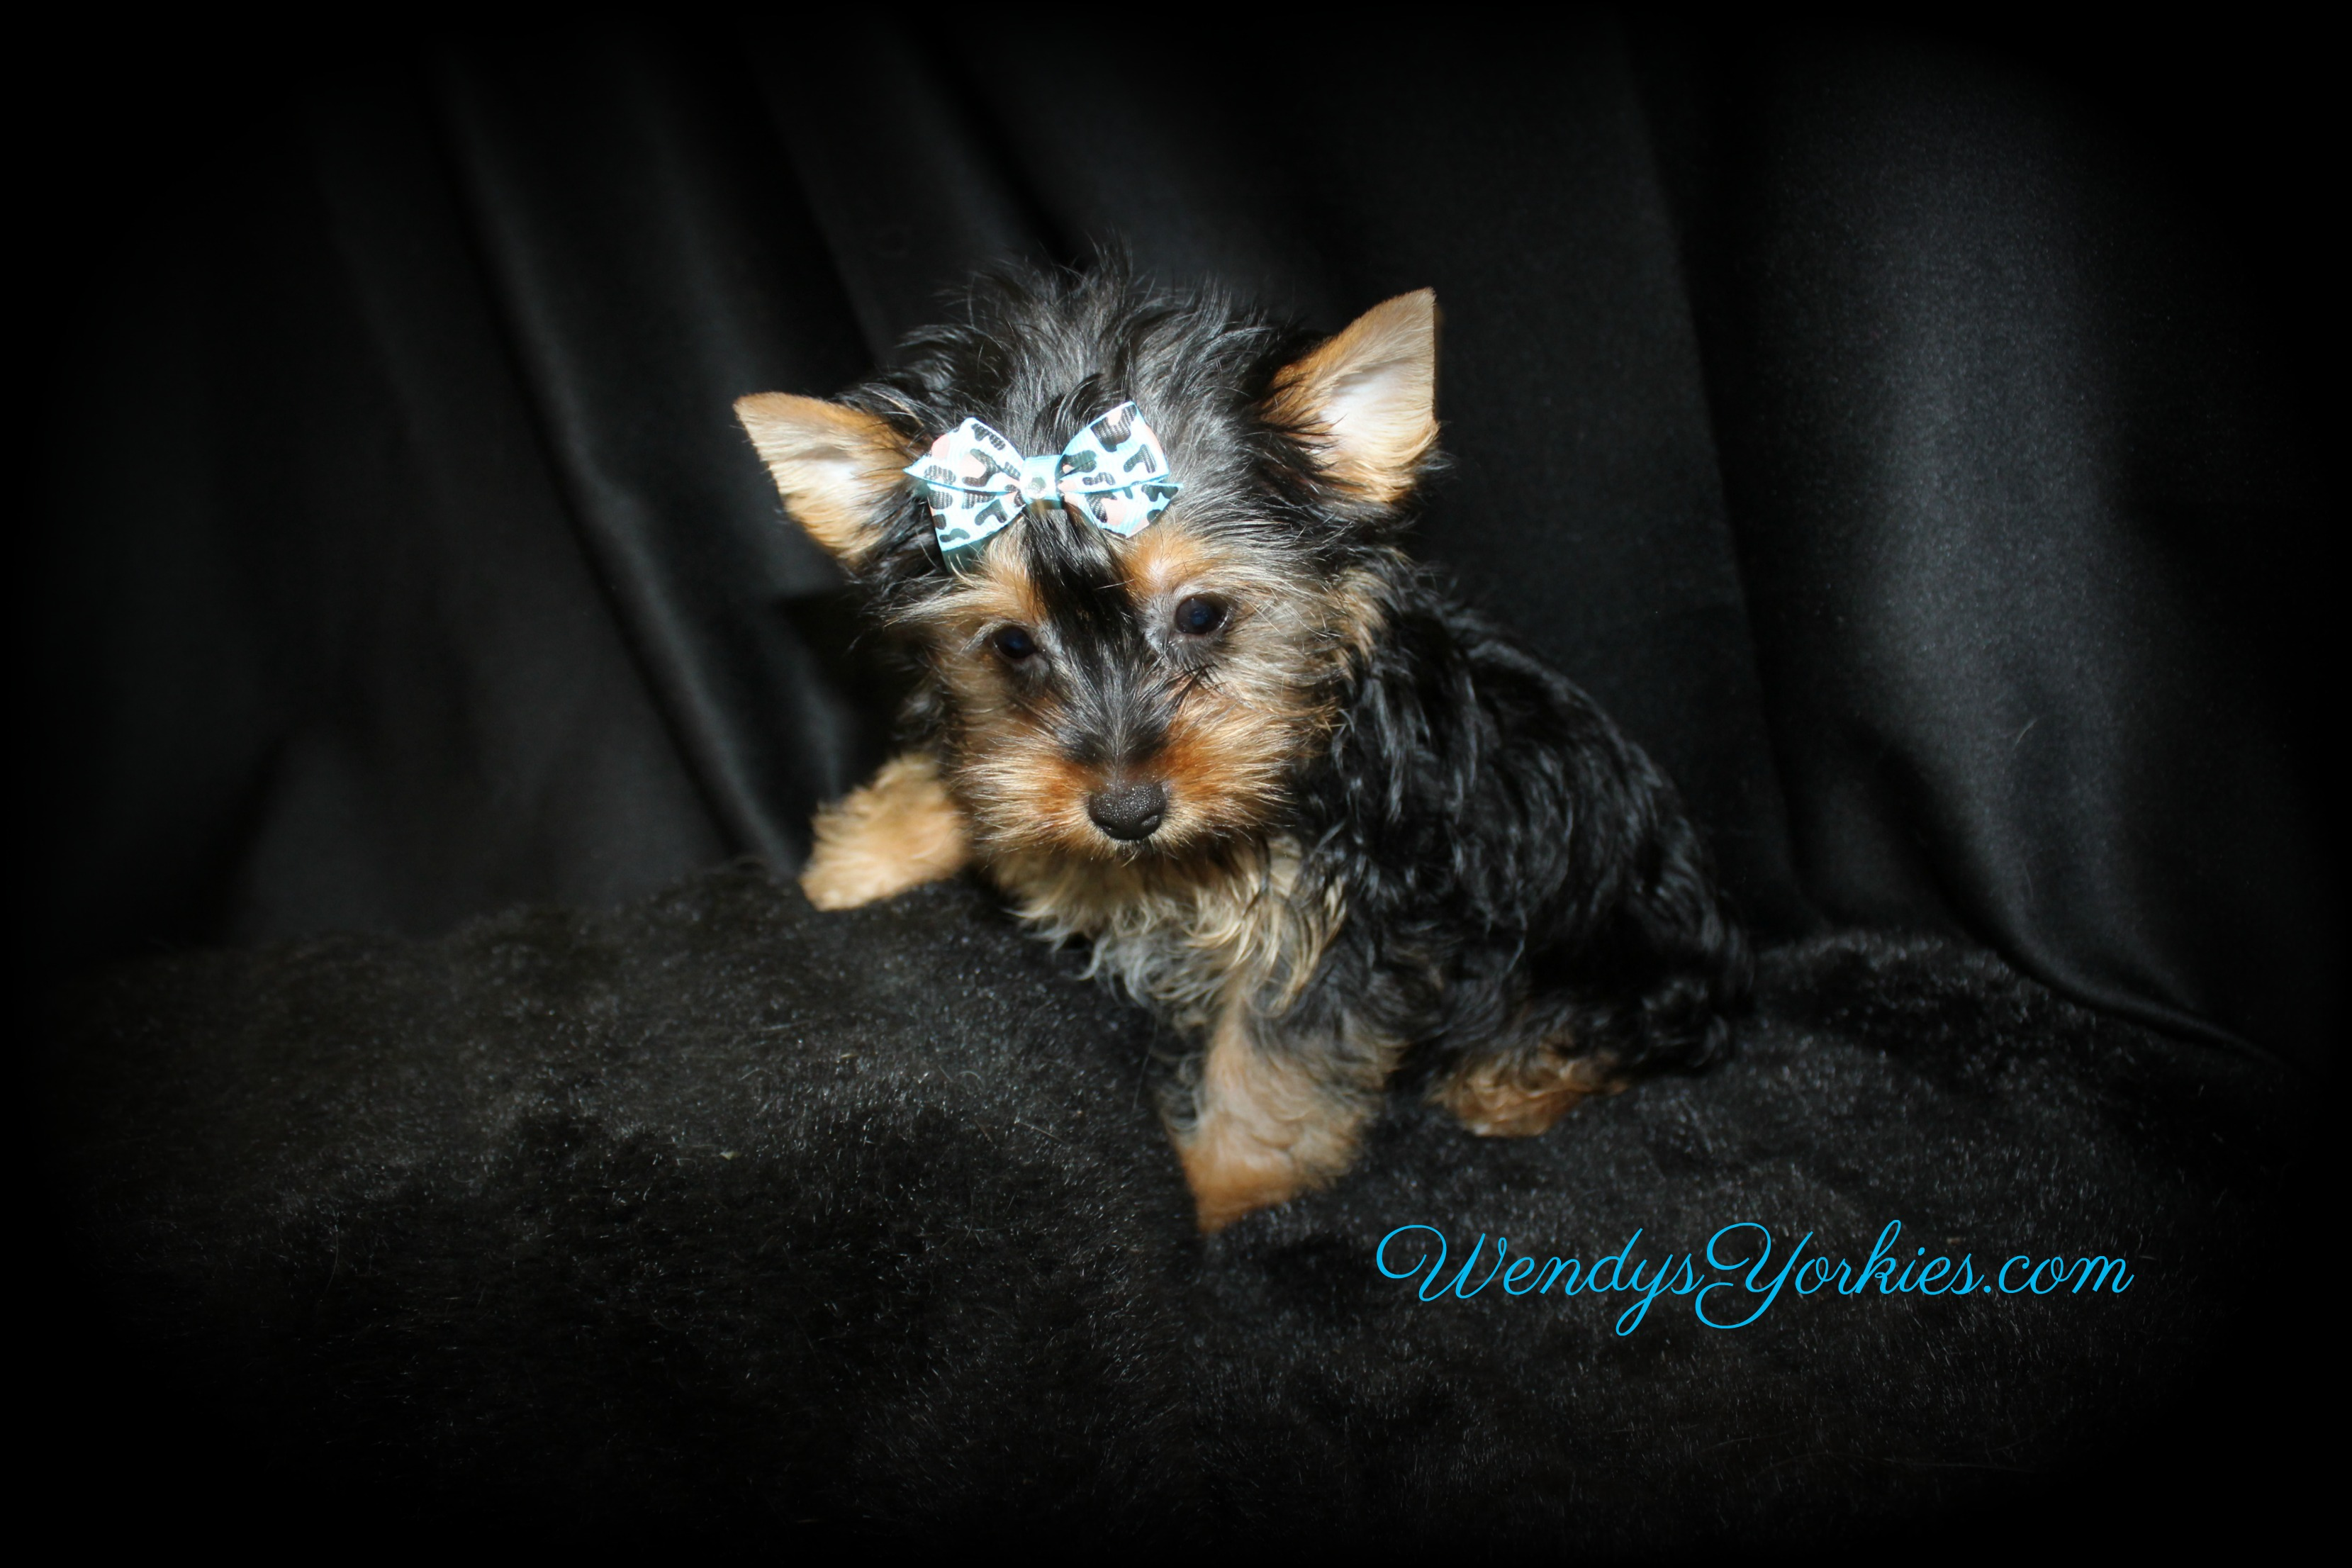 Yorkie puppies for sale in Texas, Anna m1, WendysYorkies.com